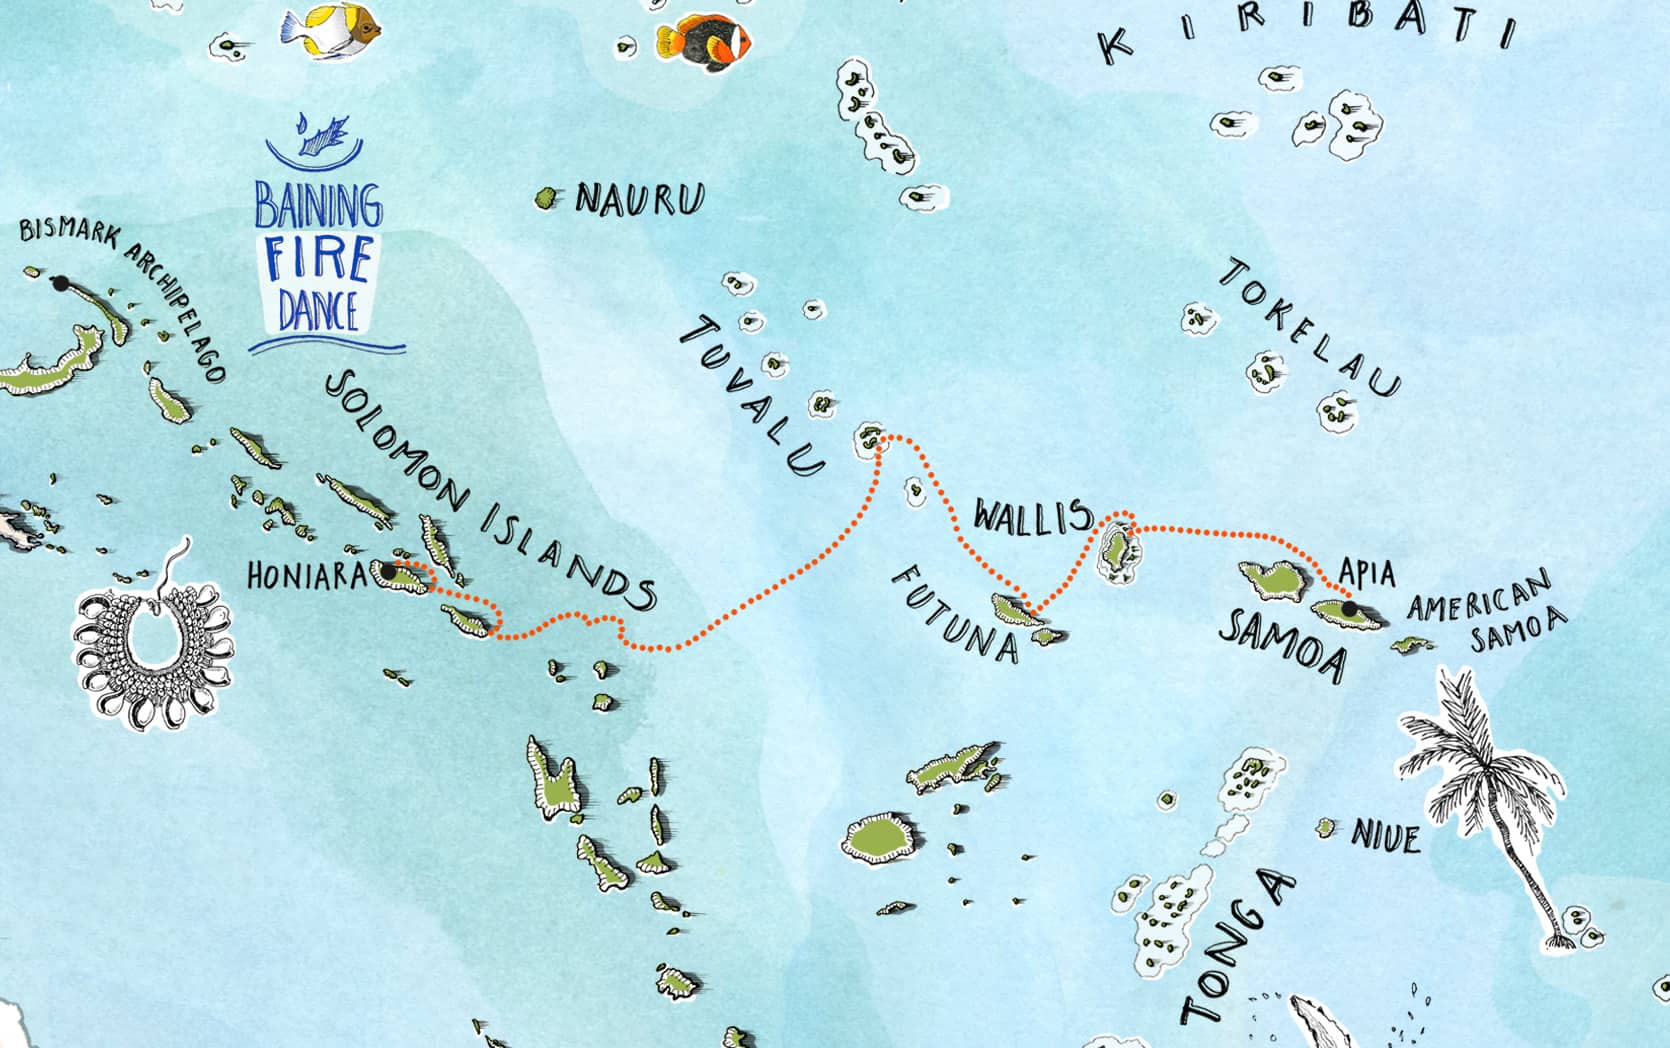 Small Islands of The World - Honiara to Apia Map